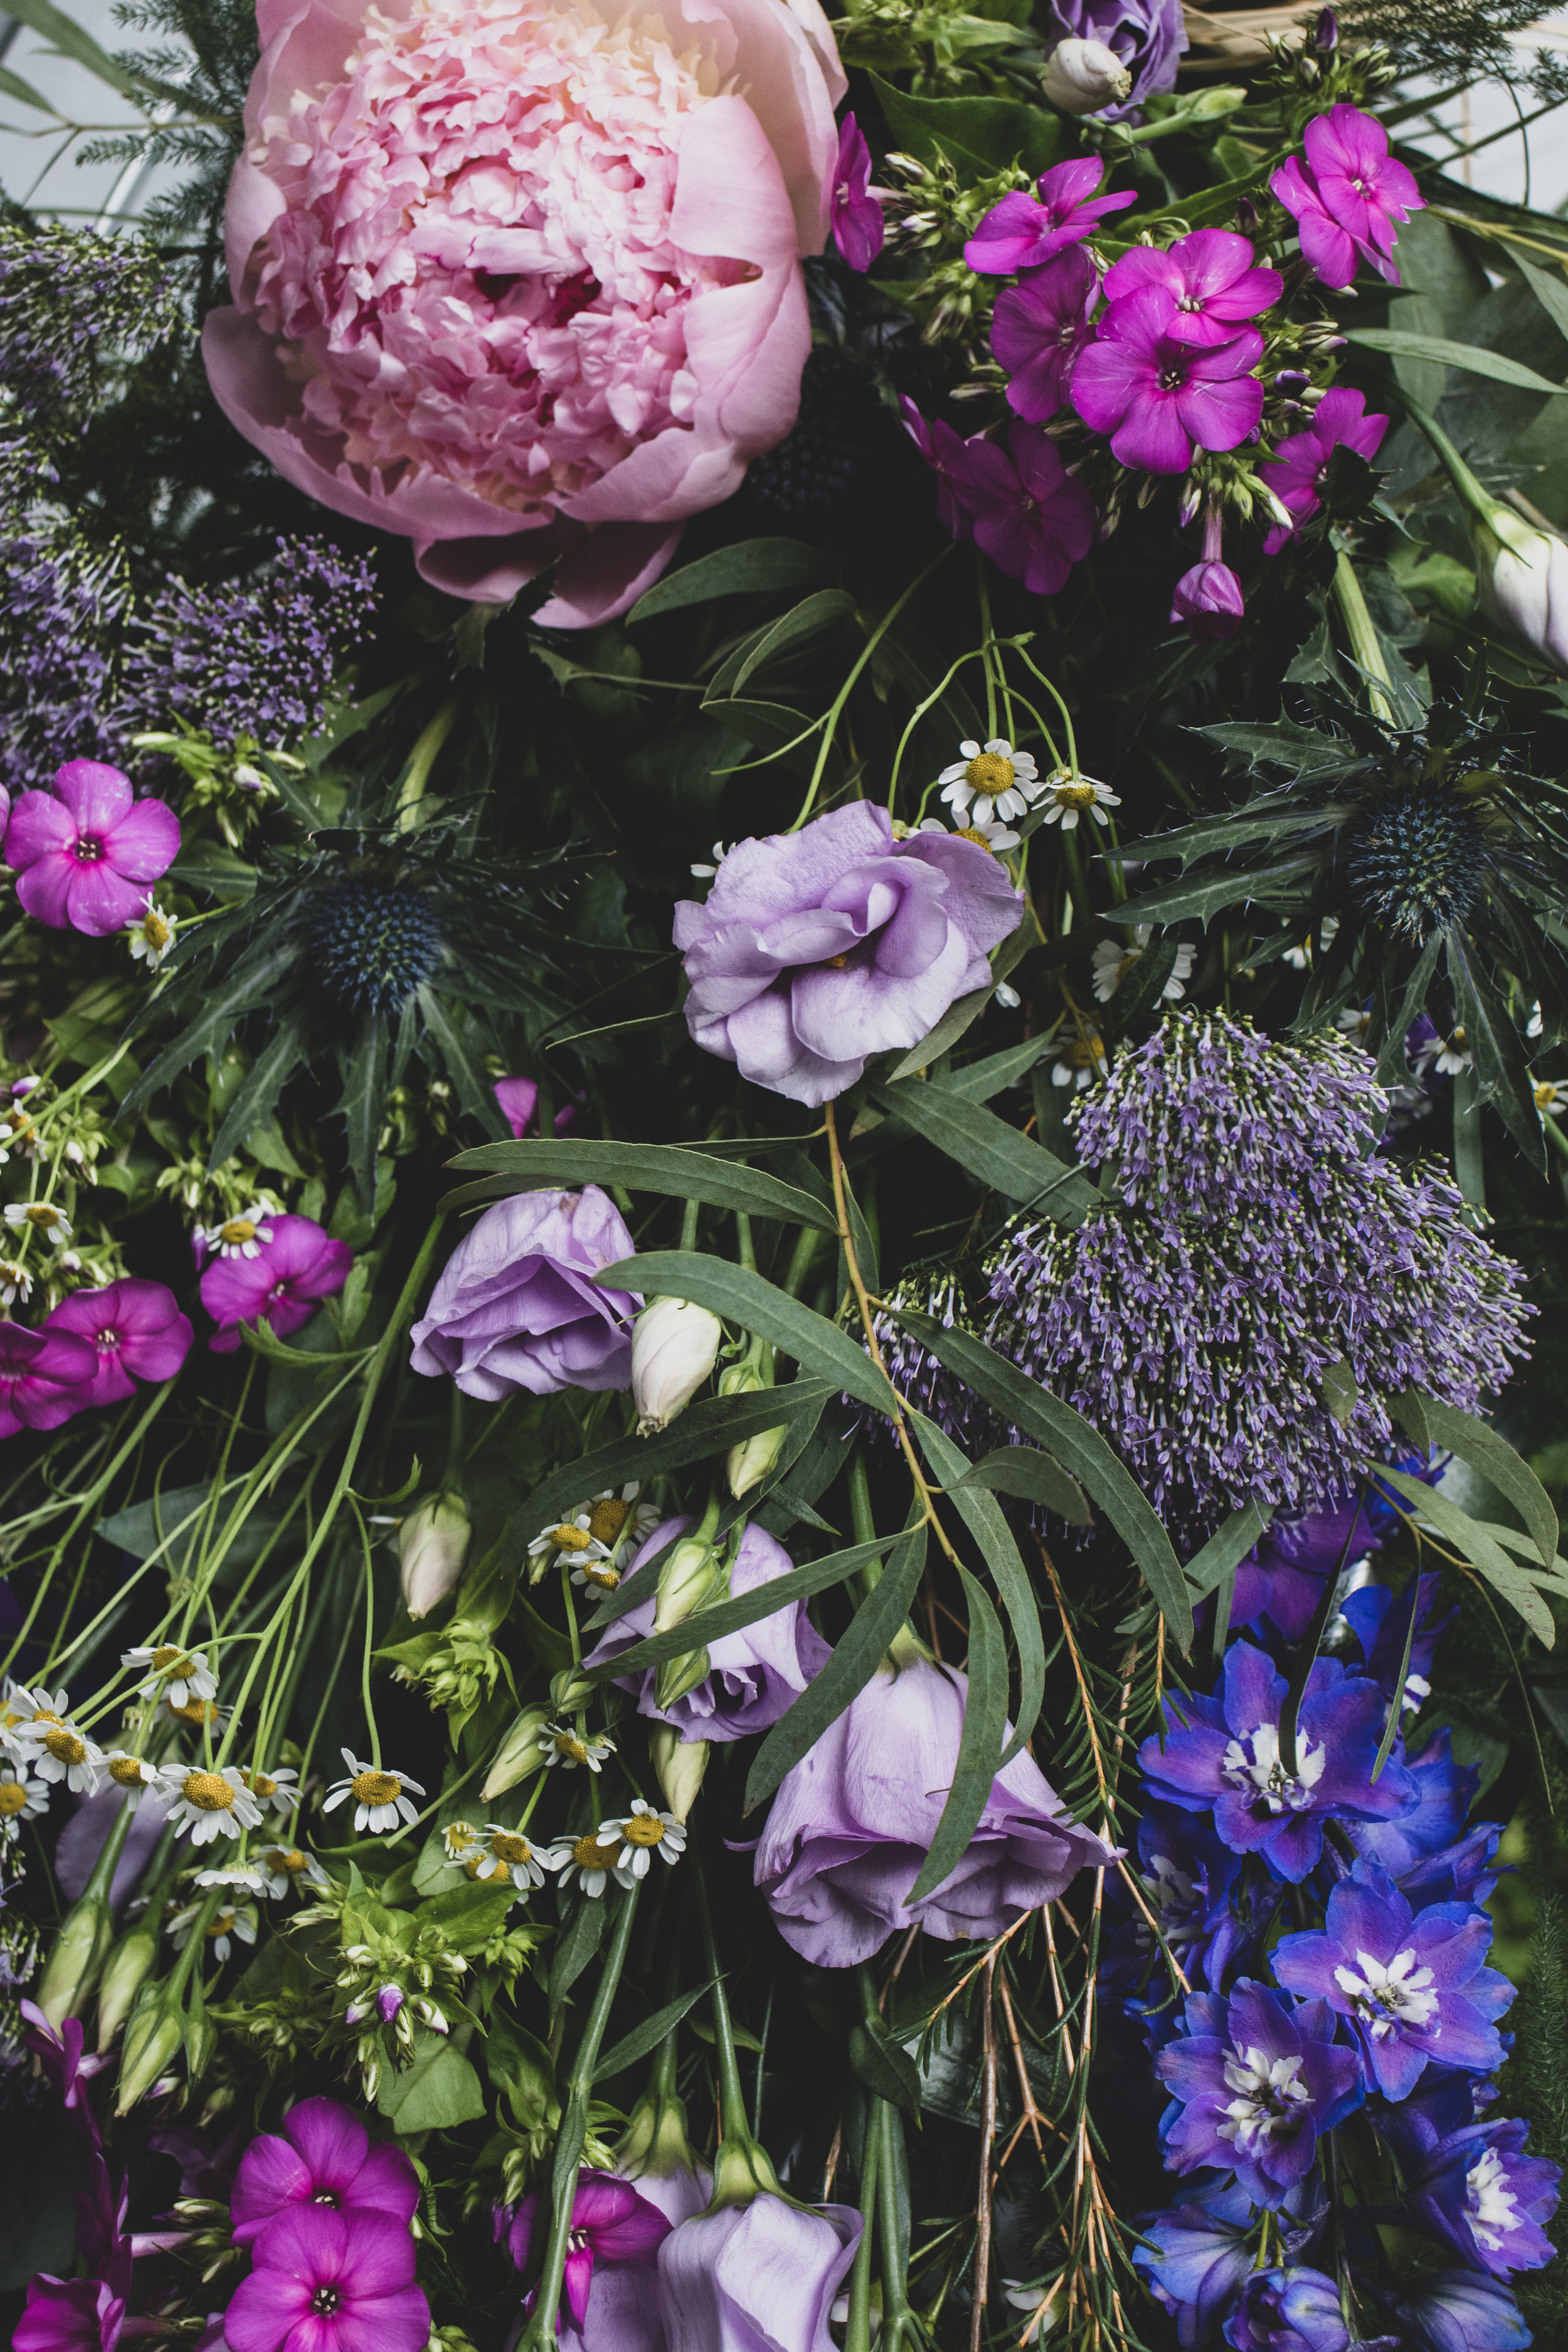 Funeral Sheaf - Inc. Pink Peonies and Delphiniums.jpg